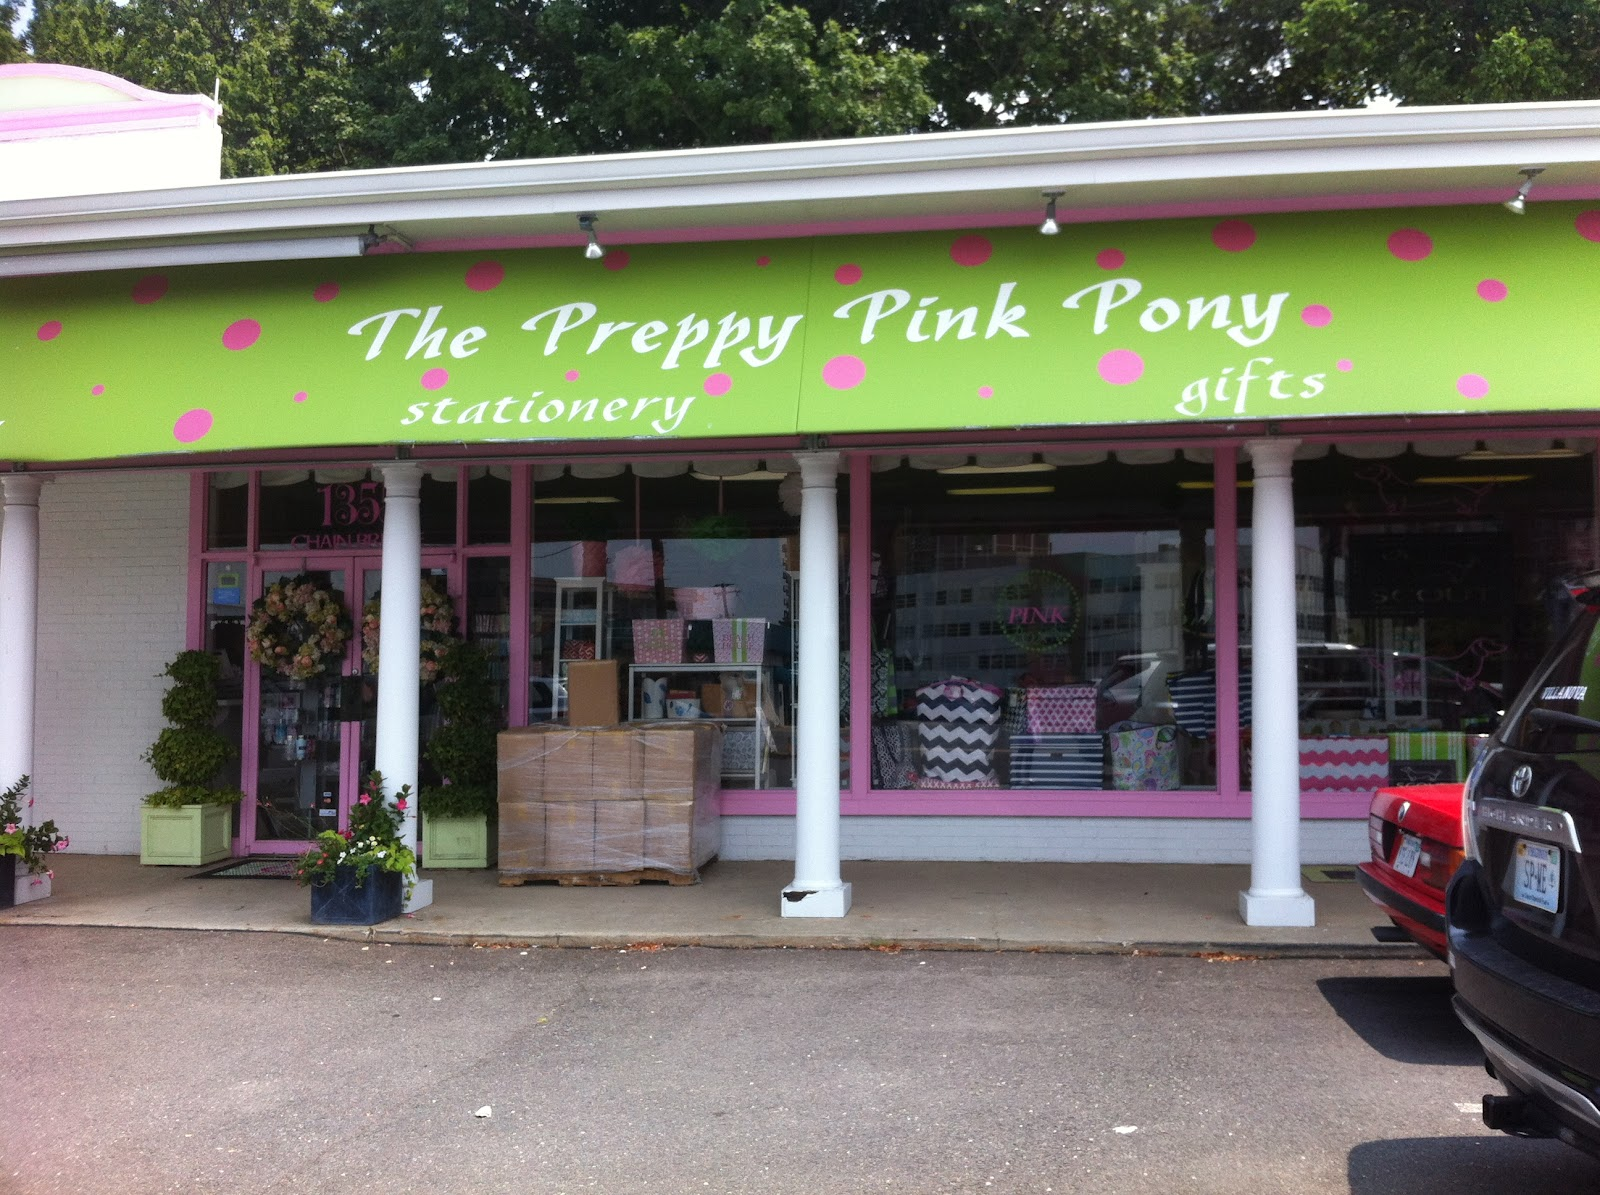 Preppy Pink Pony is located in Mc Lean, Virginia. This organization primarily operates in the Gift Shop business / industry within the Miscellaneous Retail sector. This organization has been operating for approximately 9 years.